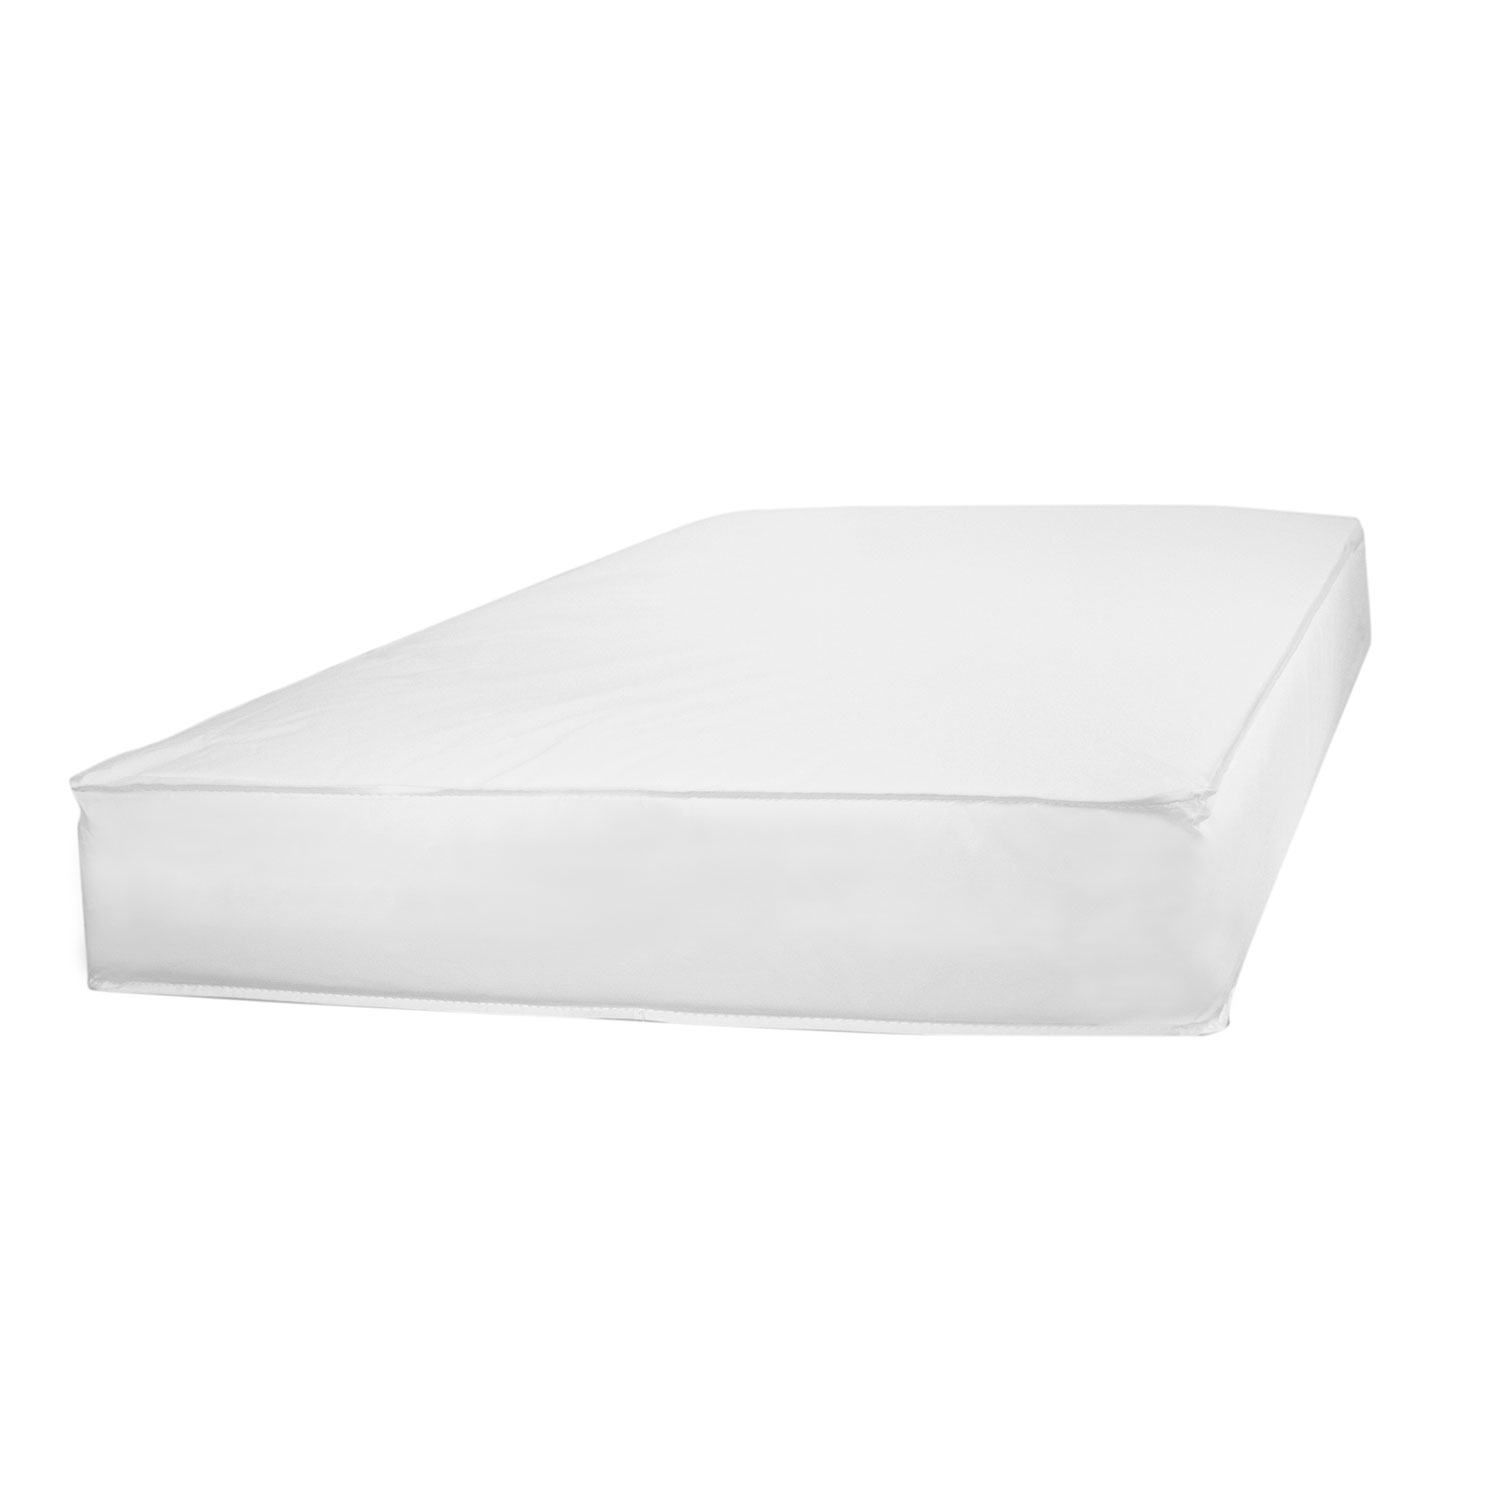 Crib for sale kelowna - Kidicomfort Sleepynight Dual Side Crib Mattress